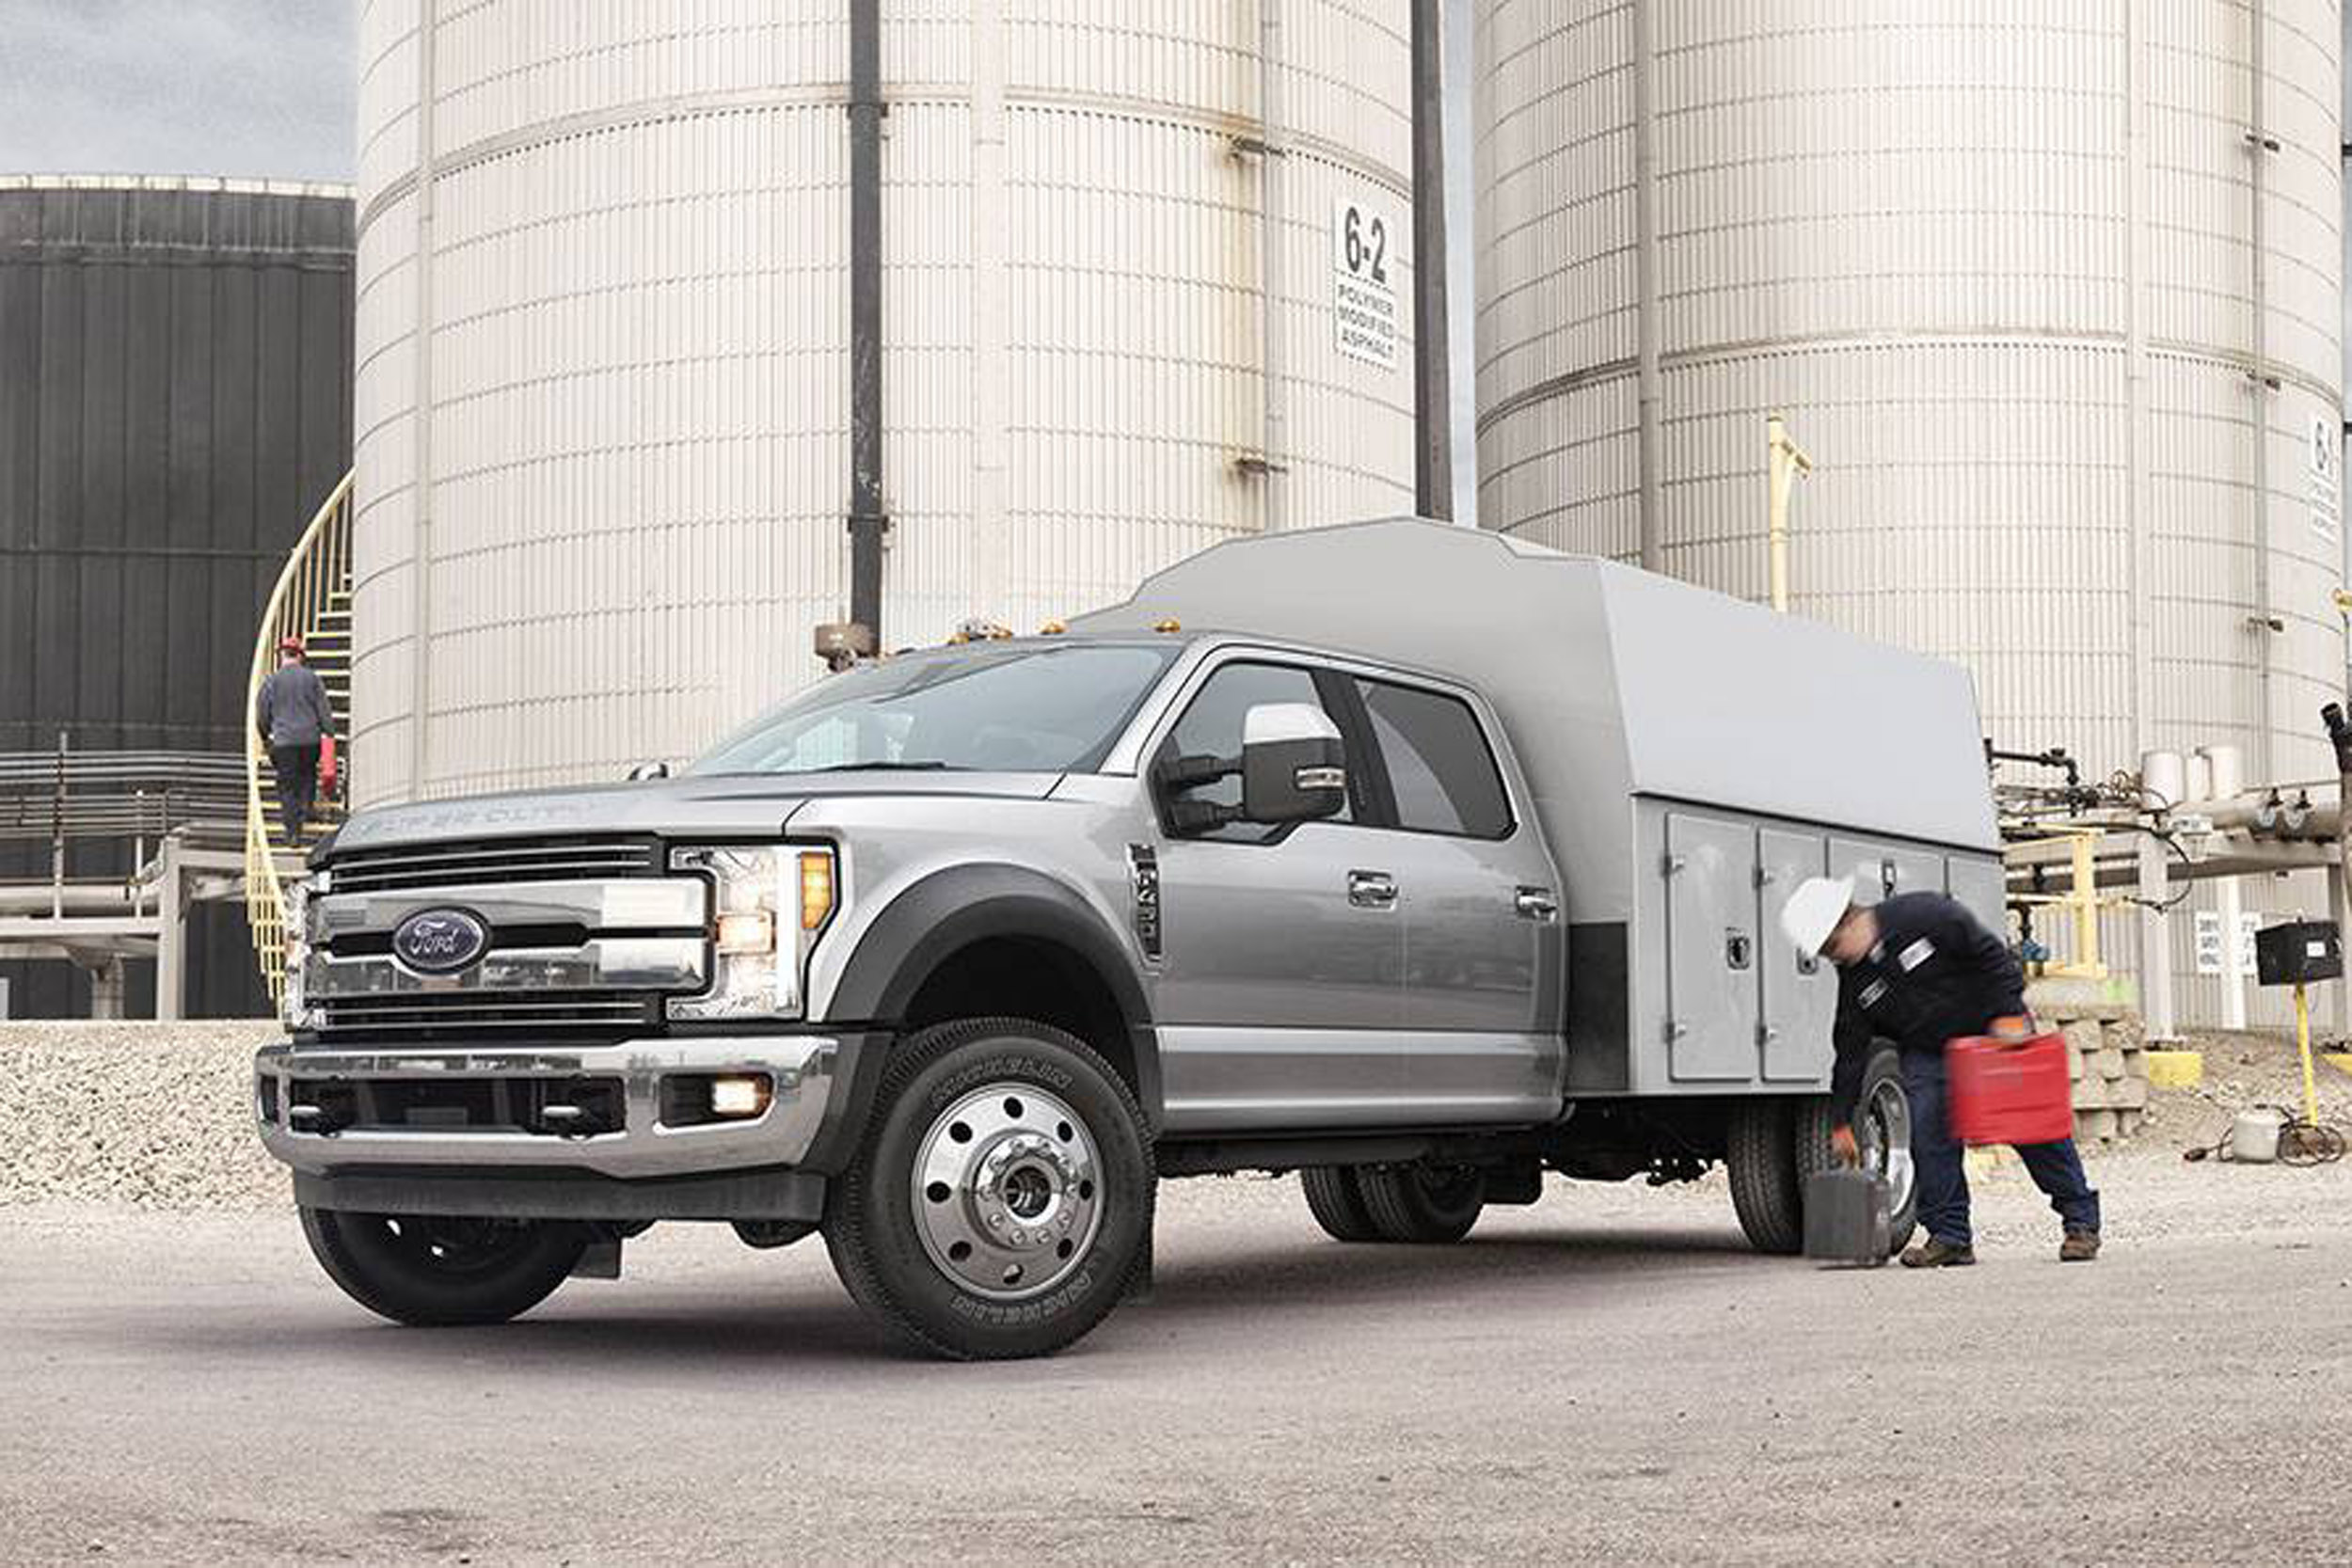 2017 ford f 450 super duty king ranch 4x4 crew cab 8 39 39 box drw photos and videos msn autos. Black Bedroom Furniture Sets. Home Design Ideas